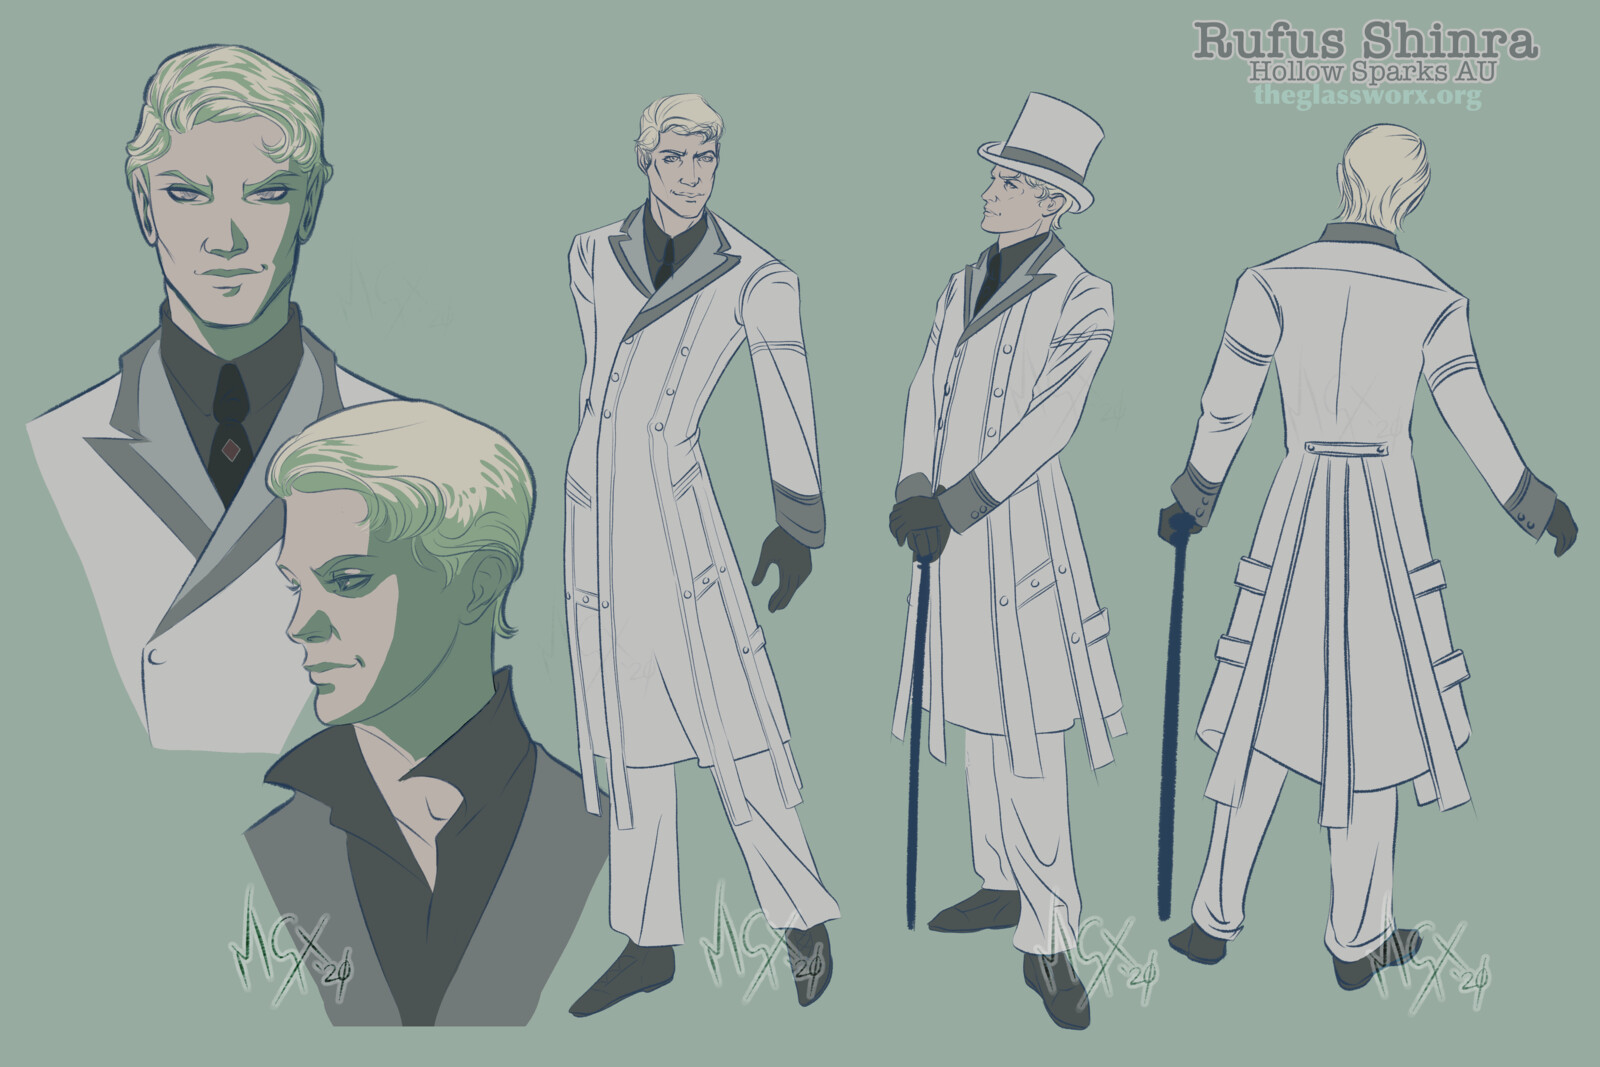 Fan Art: Rufus Shinra - Hollow Sparks AU - Final Fantasy VII: Remake